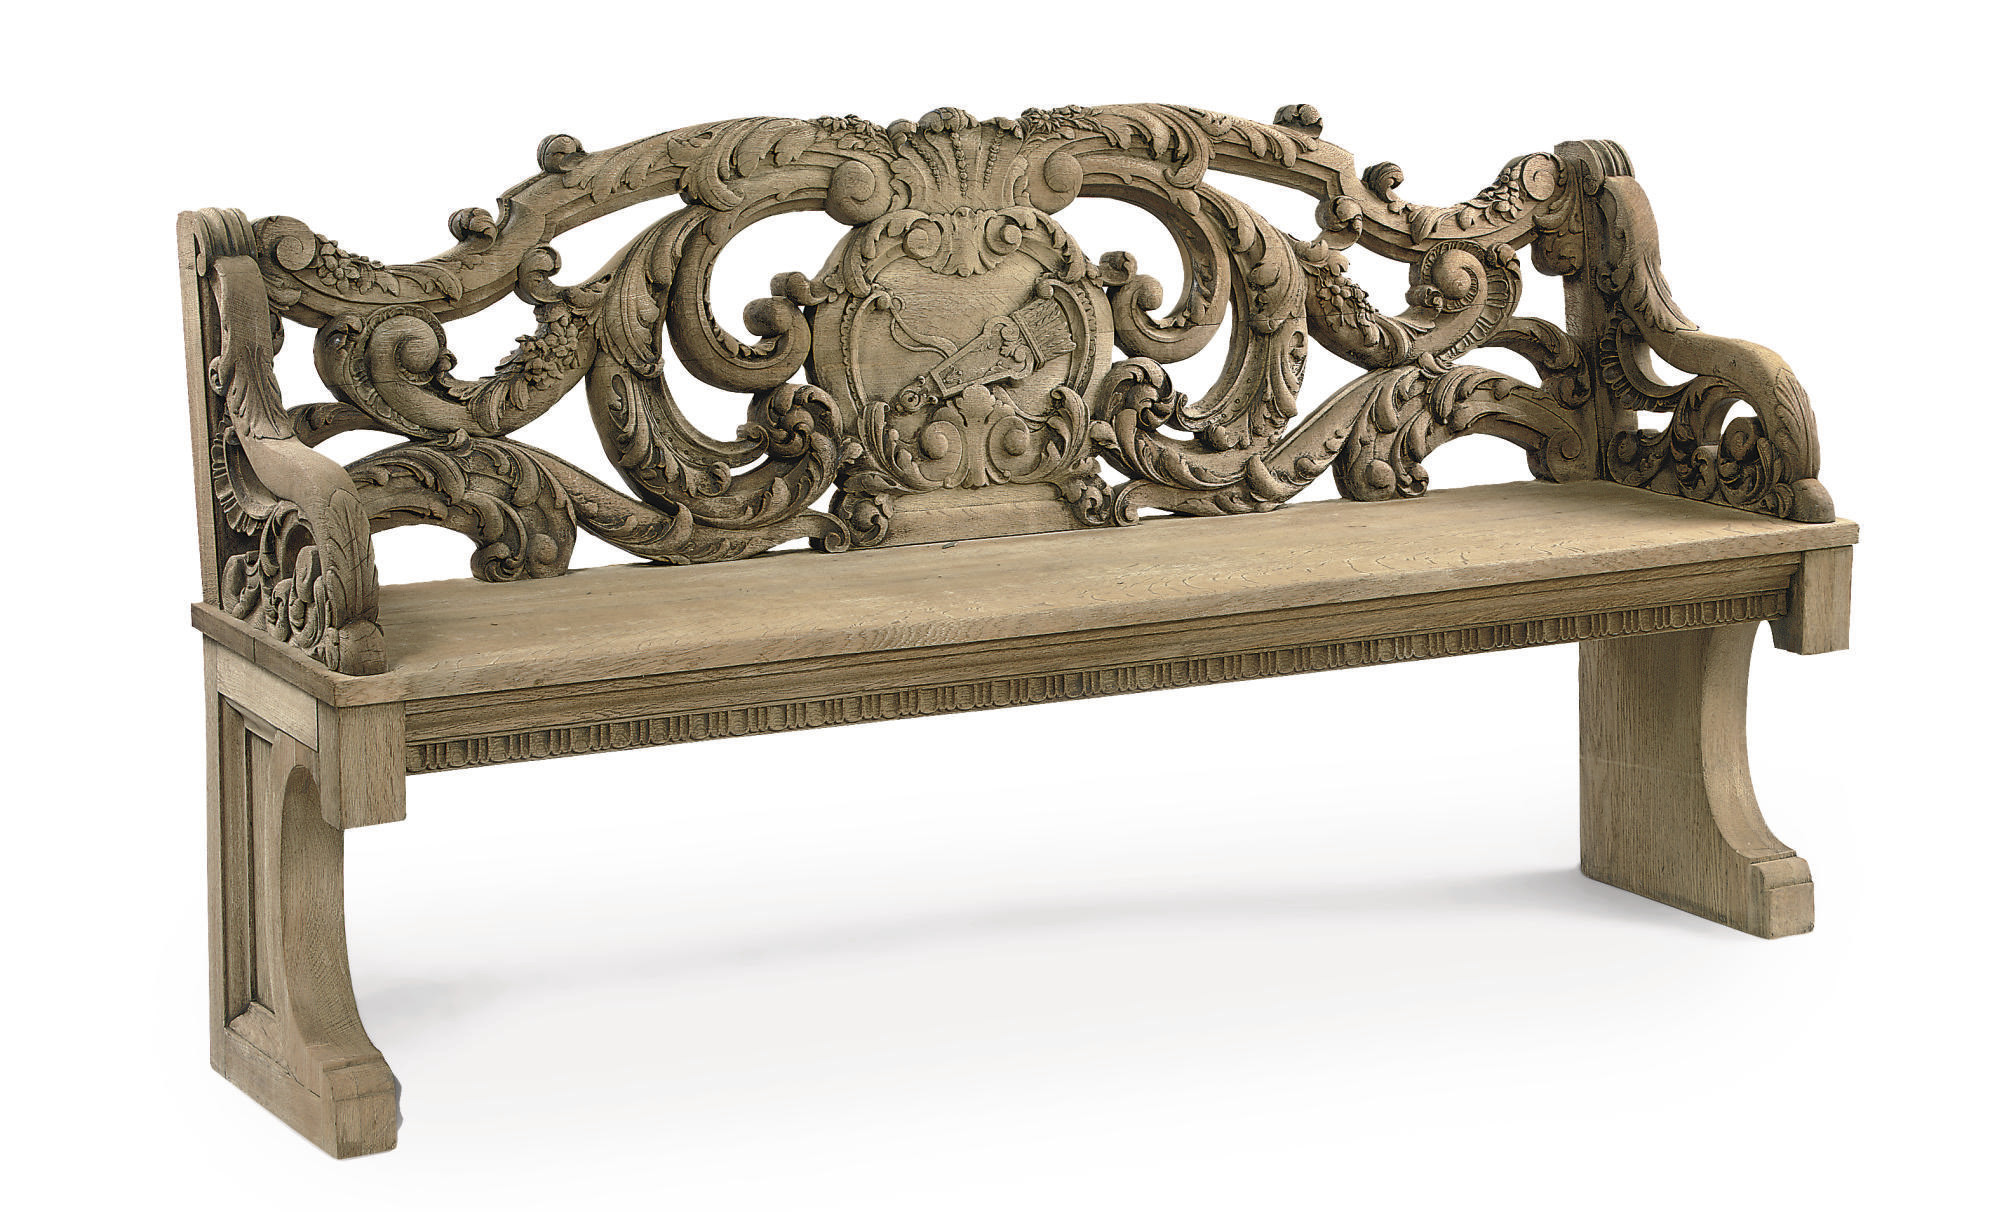 A DUTCH OAK BENCH